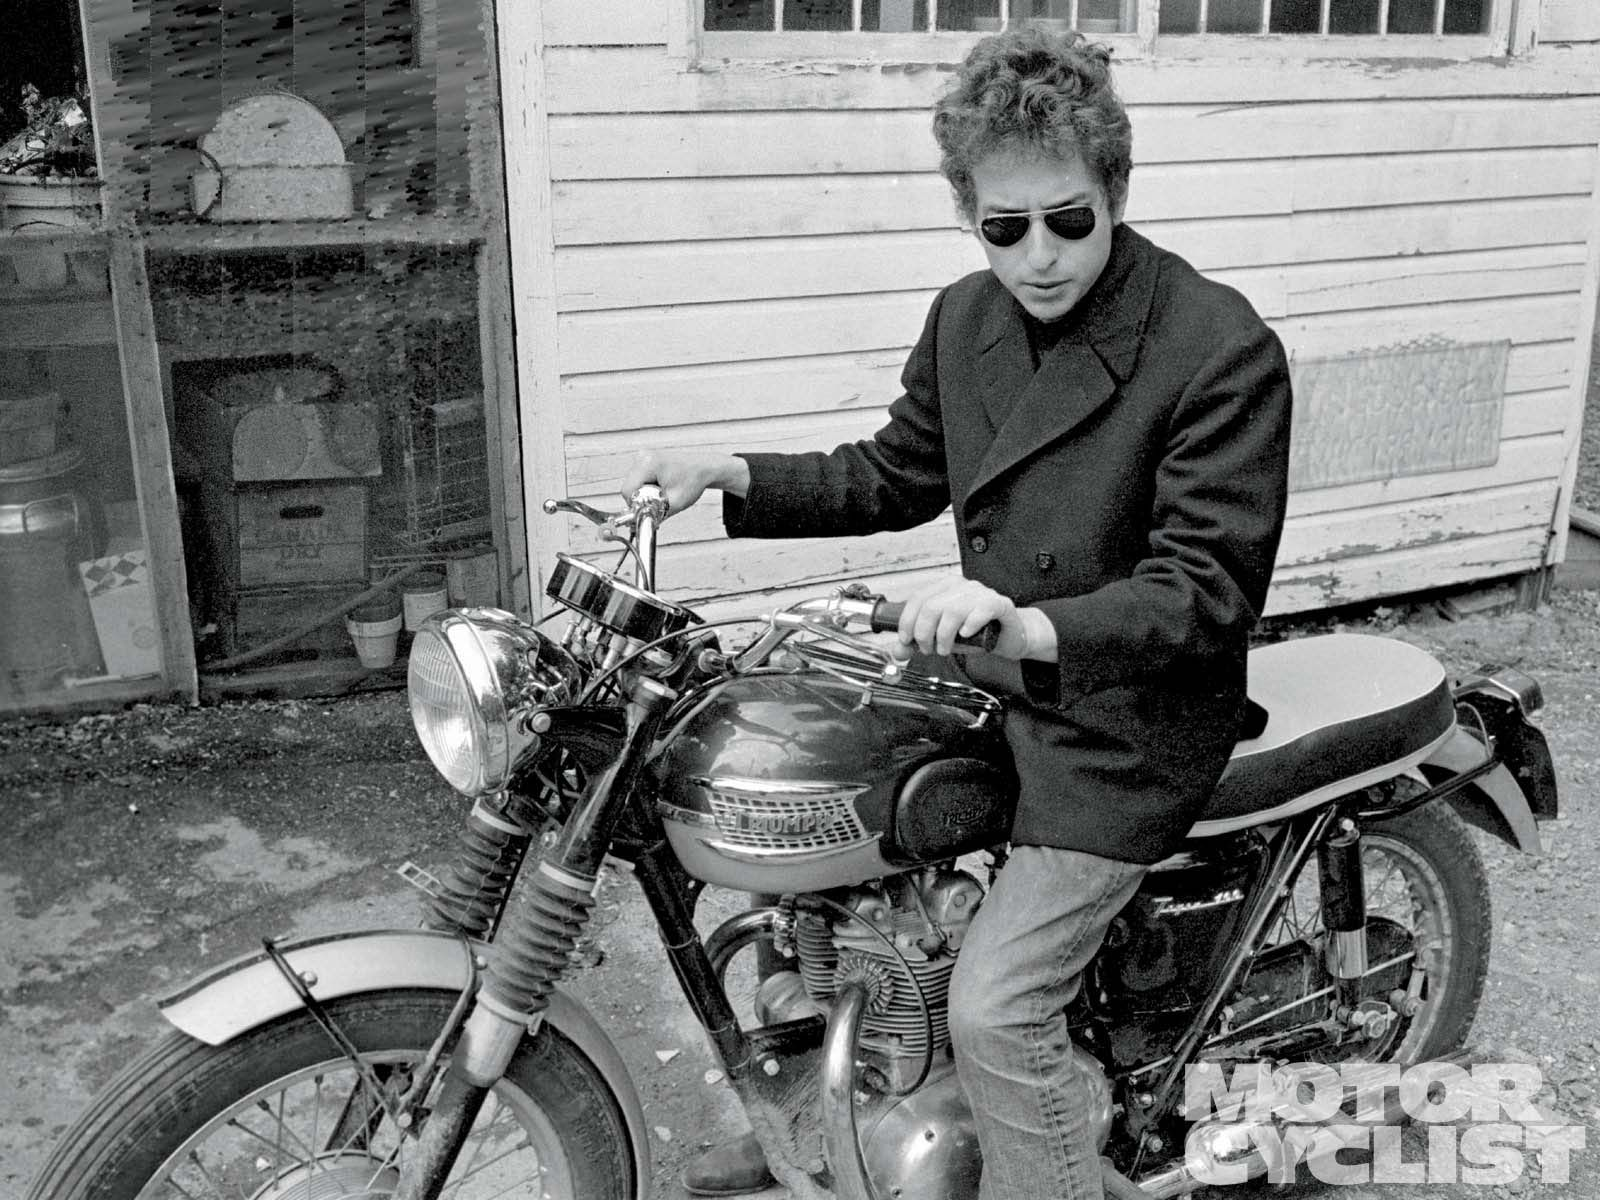 the bob dylan motorcycle crash - motorcyclist magazine | bob dylan